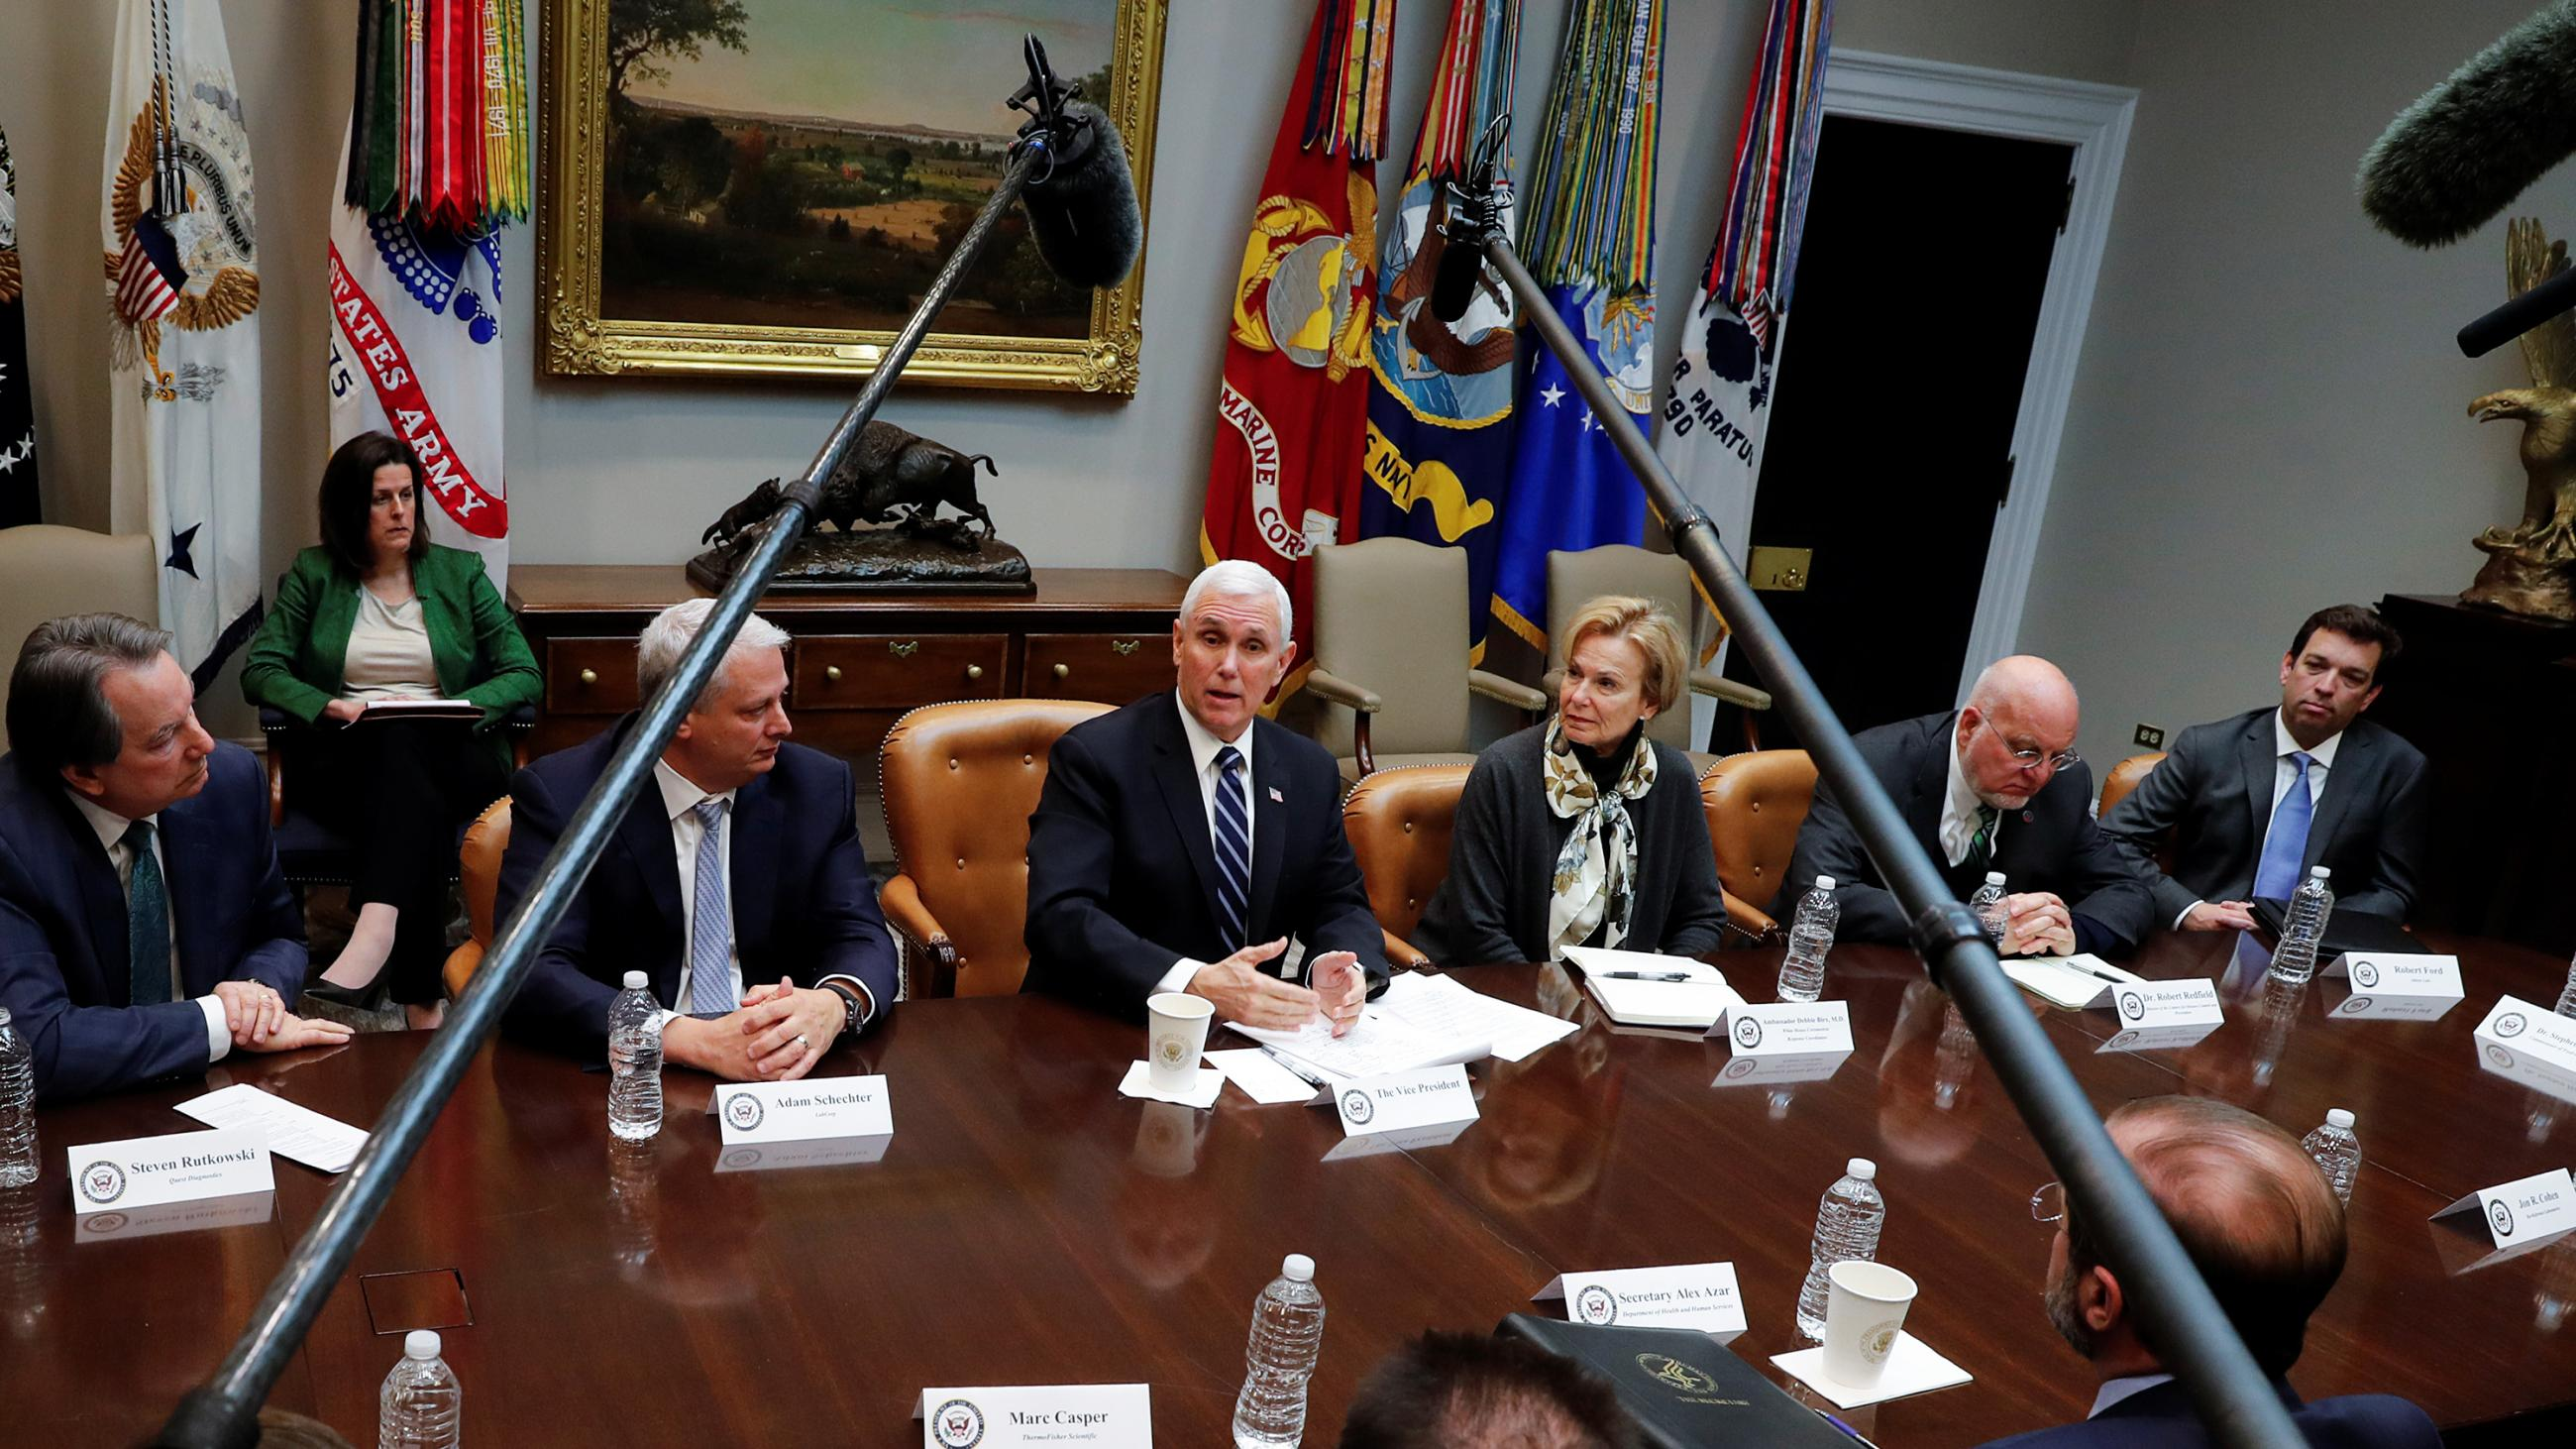 Photo shows the vice president at a large table speaking and surrounded by other people. Two microphone boom poles from opposite ends of the table extend out and converge over the table toward him.